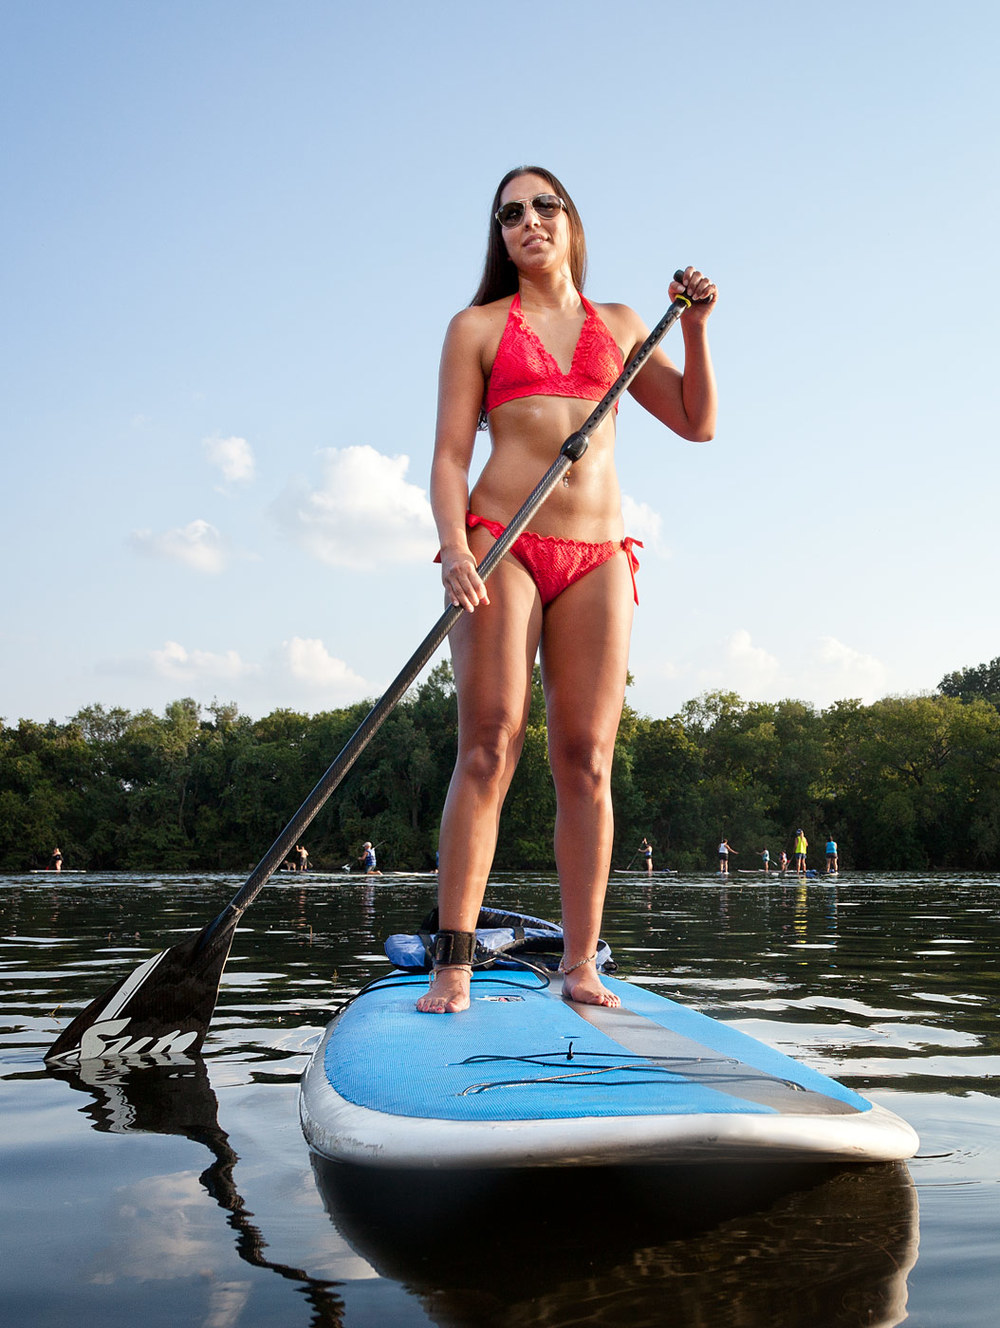 Adventure-ABP-Liz-paddleboard1.jpg